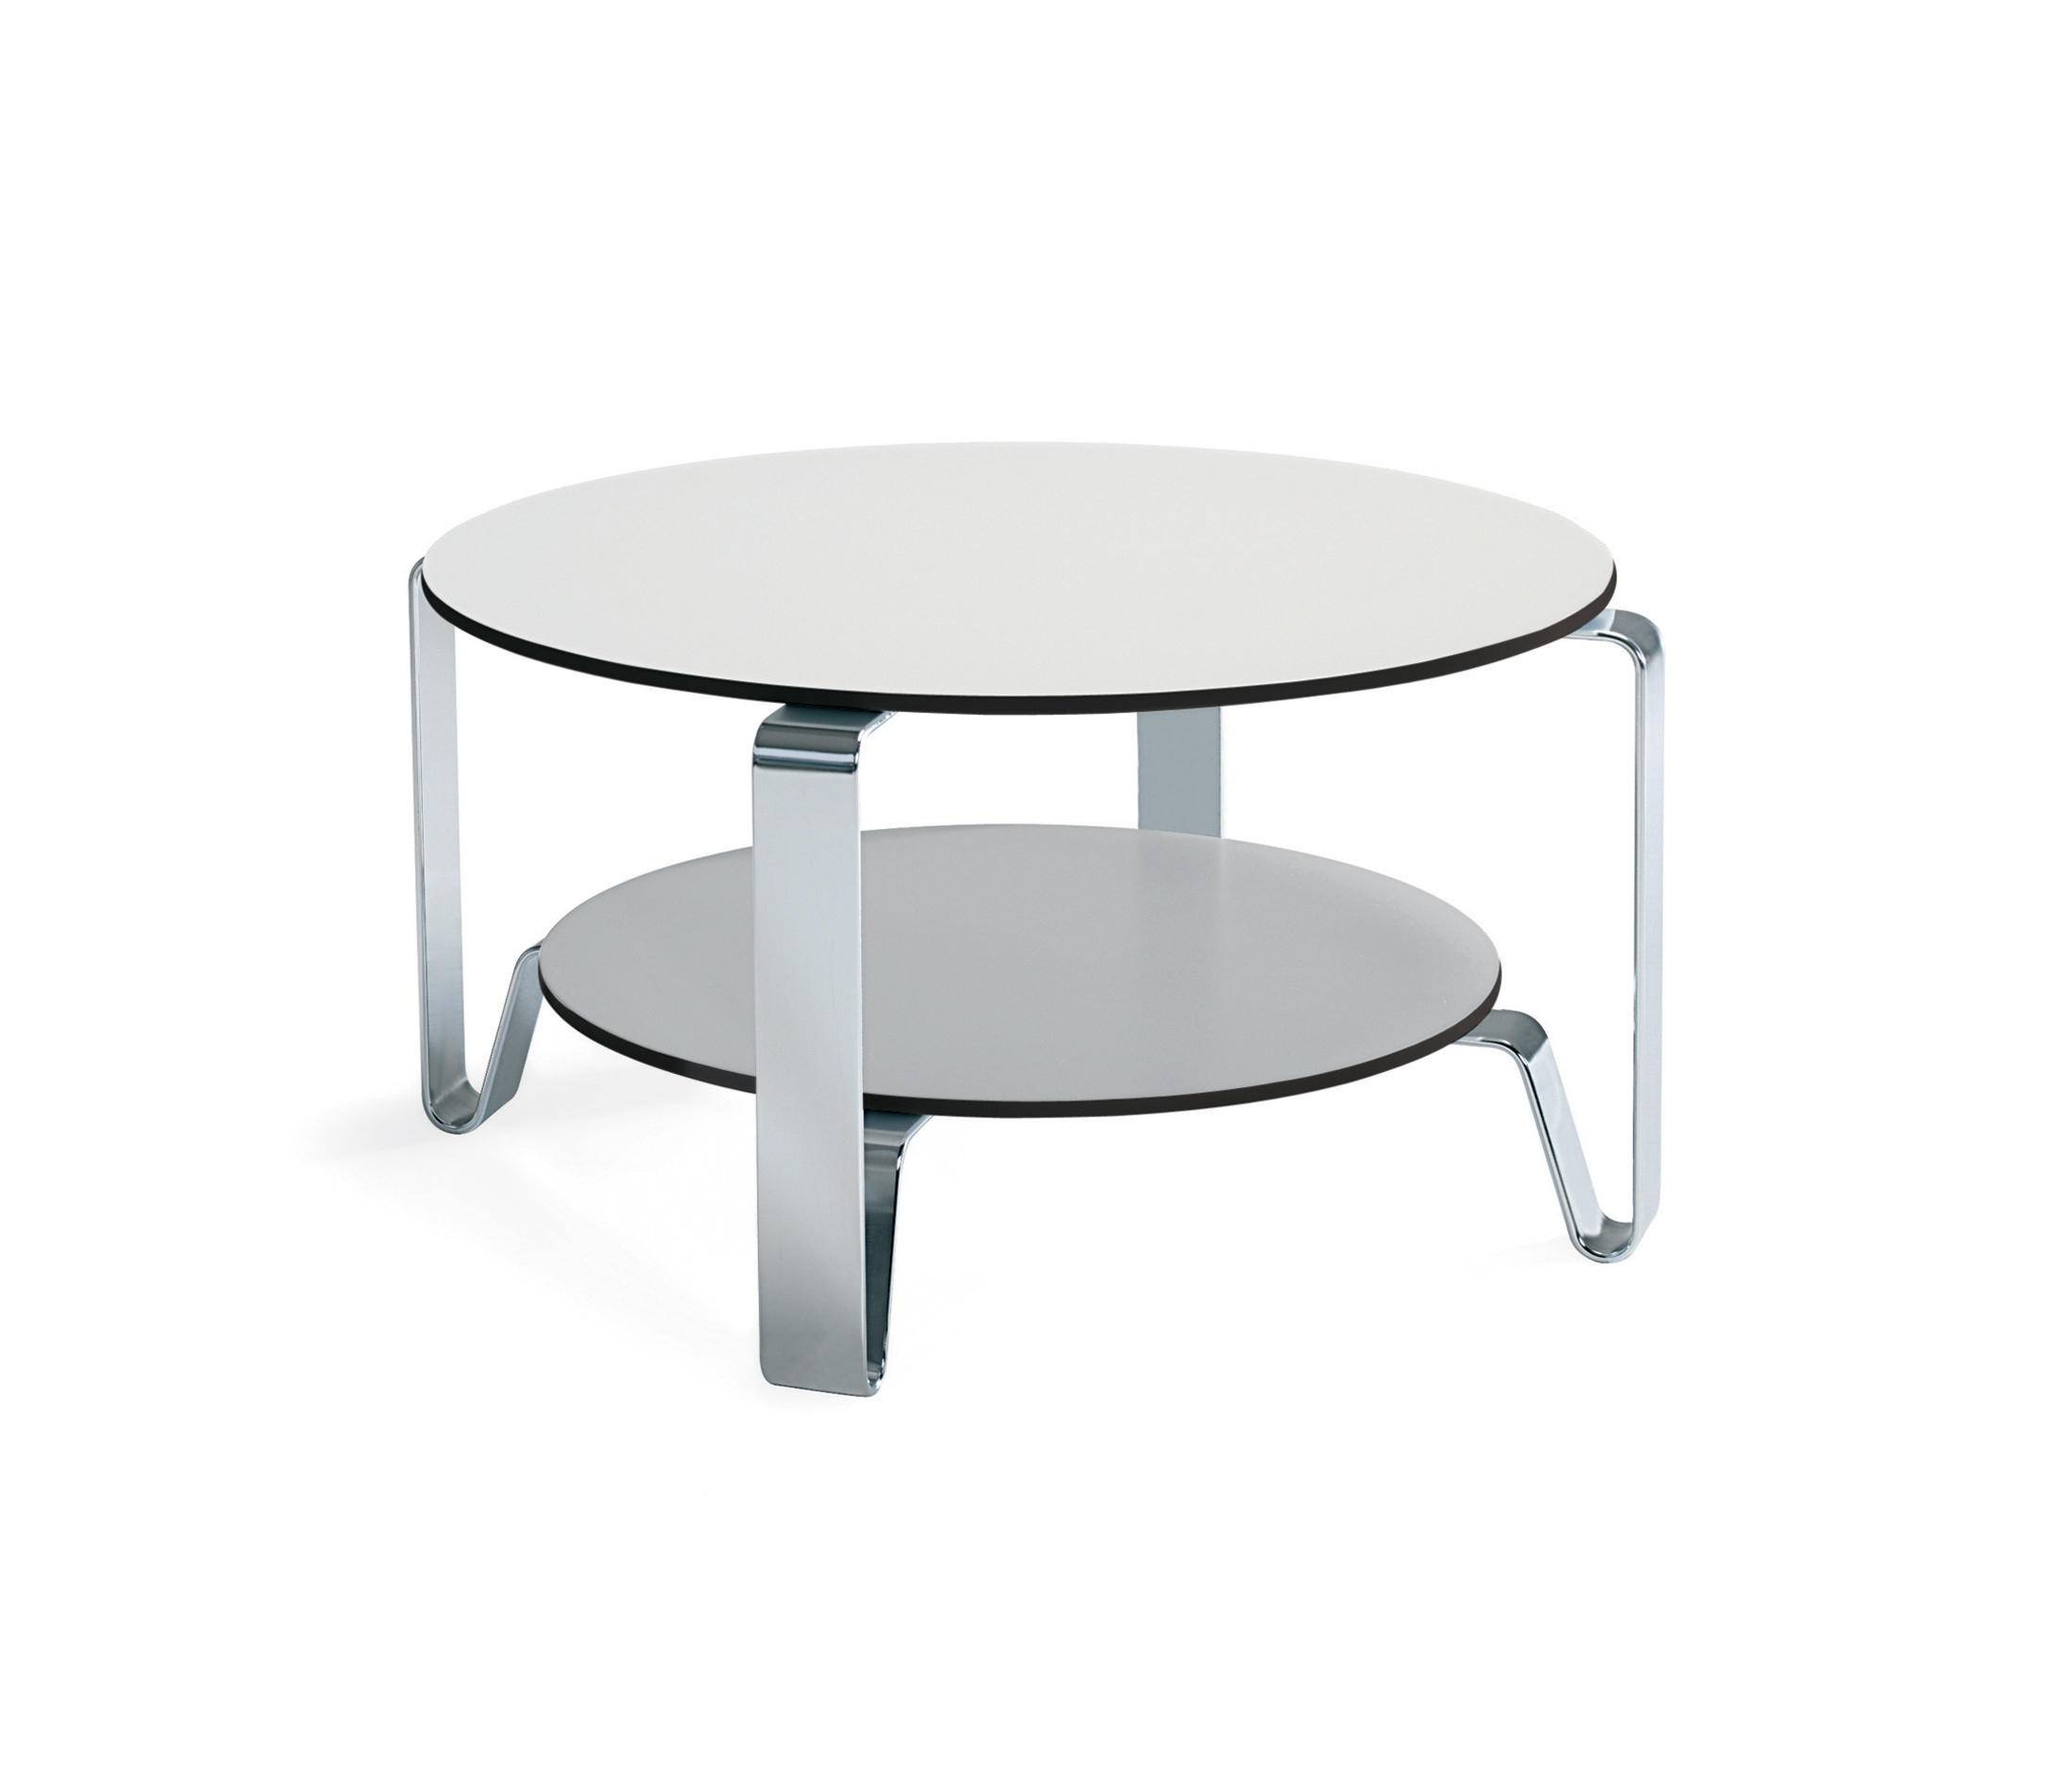 Cosmo Coffee Table - Lounge Tables From Materia | Architonic regarding Cosmo Coffee Tables (Image 3 of 30)